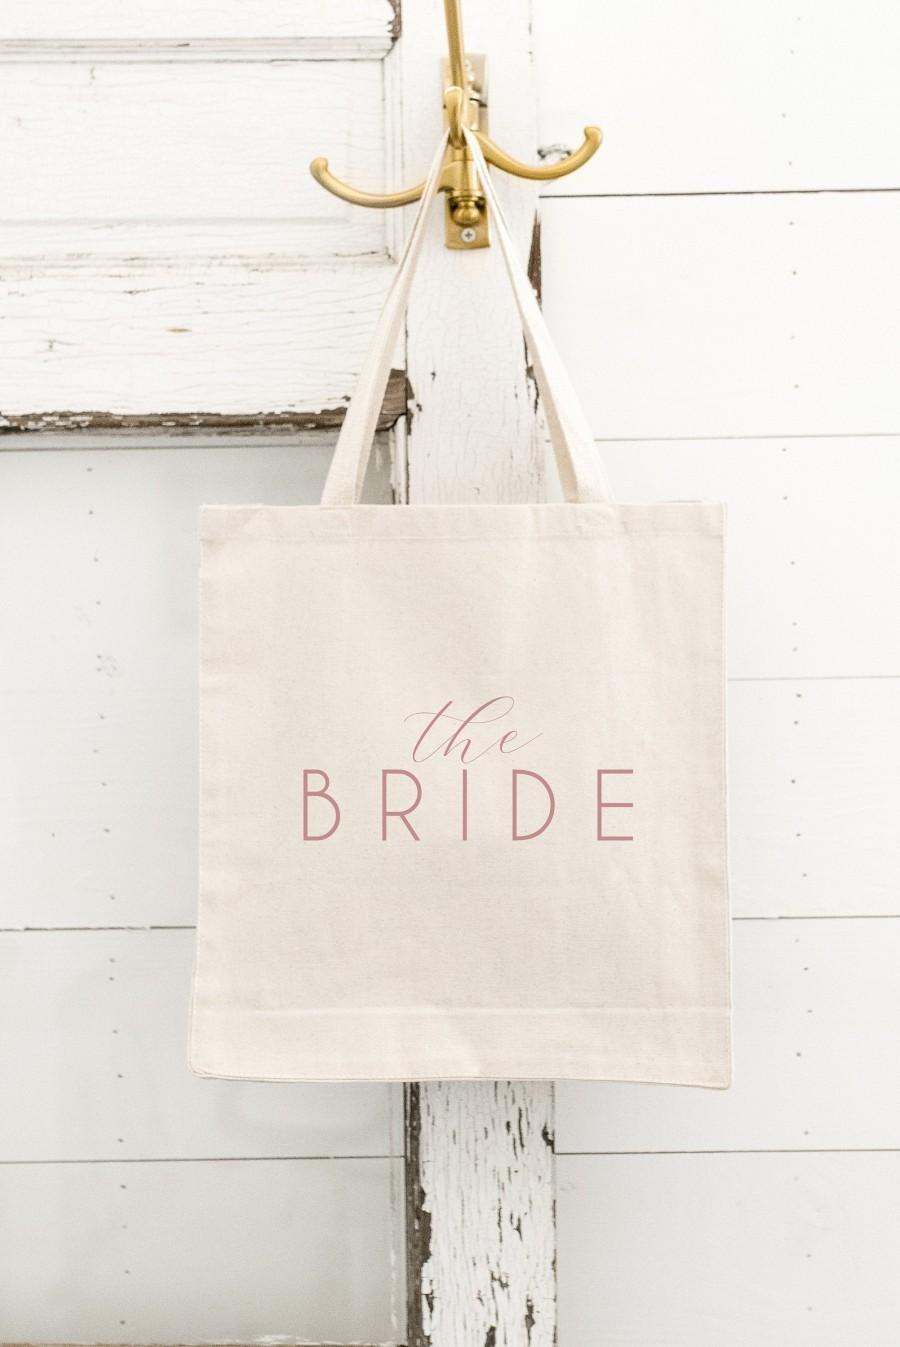 Wedding - The Bride Tote - Mrs Tote - Bride Gift - Bride Bag - Bachelorette Party Tote - Bride Tote Bag - Bridal Shower Gift - Wedding Tote